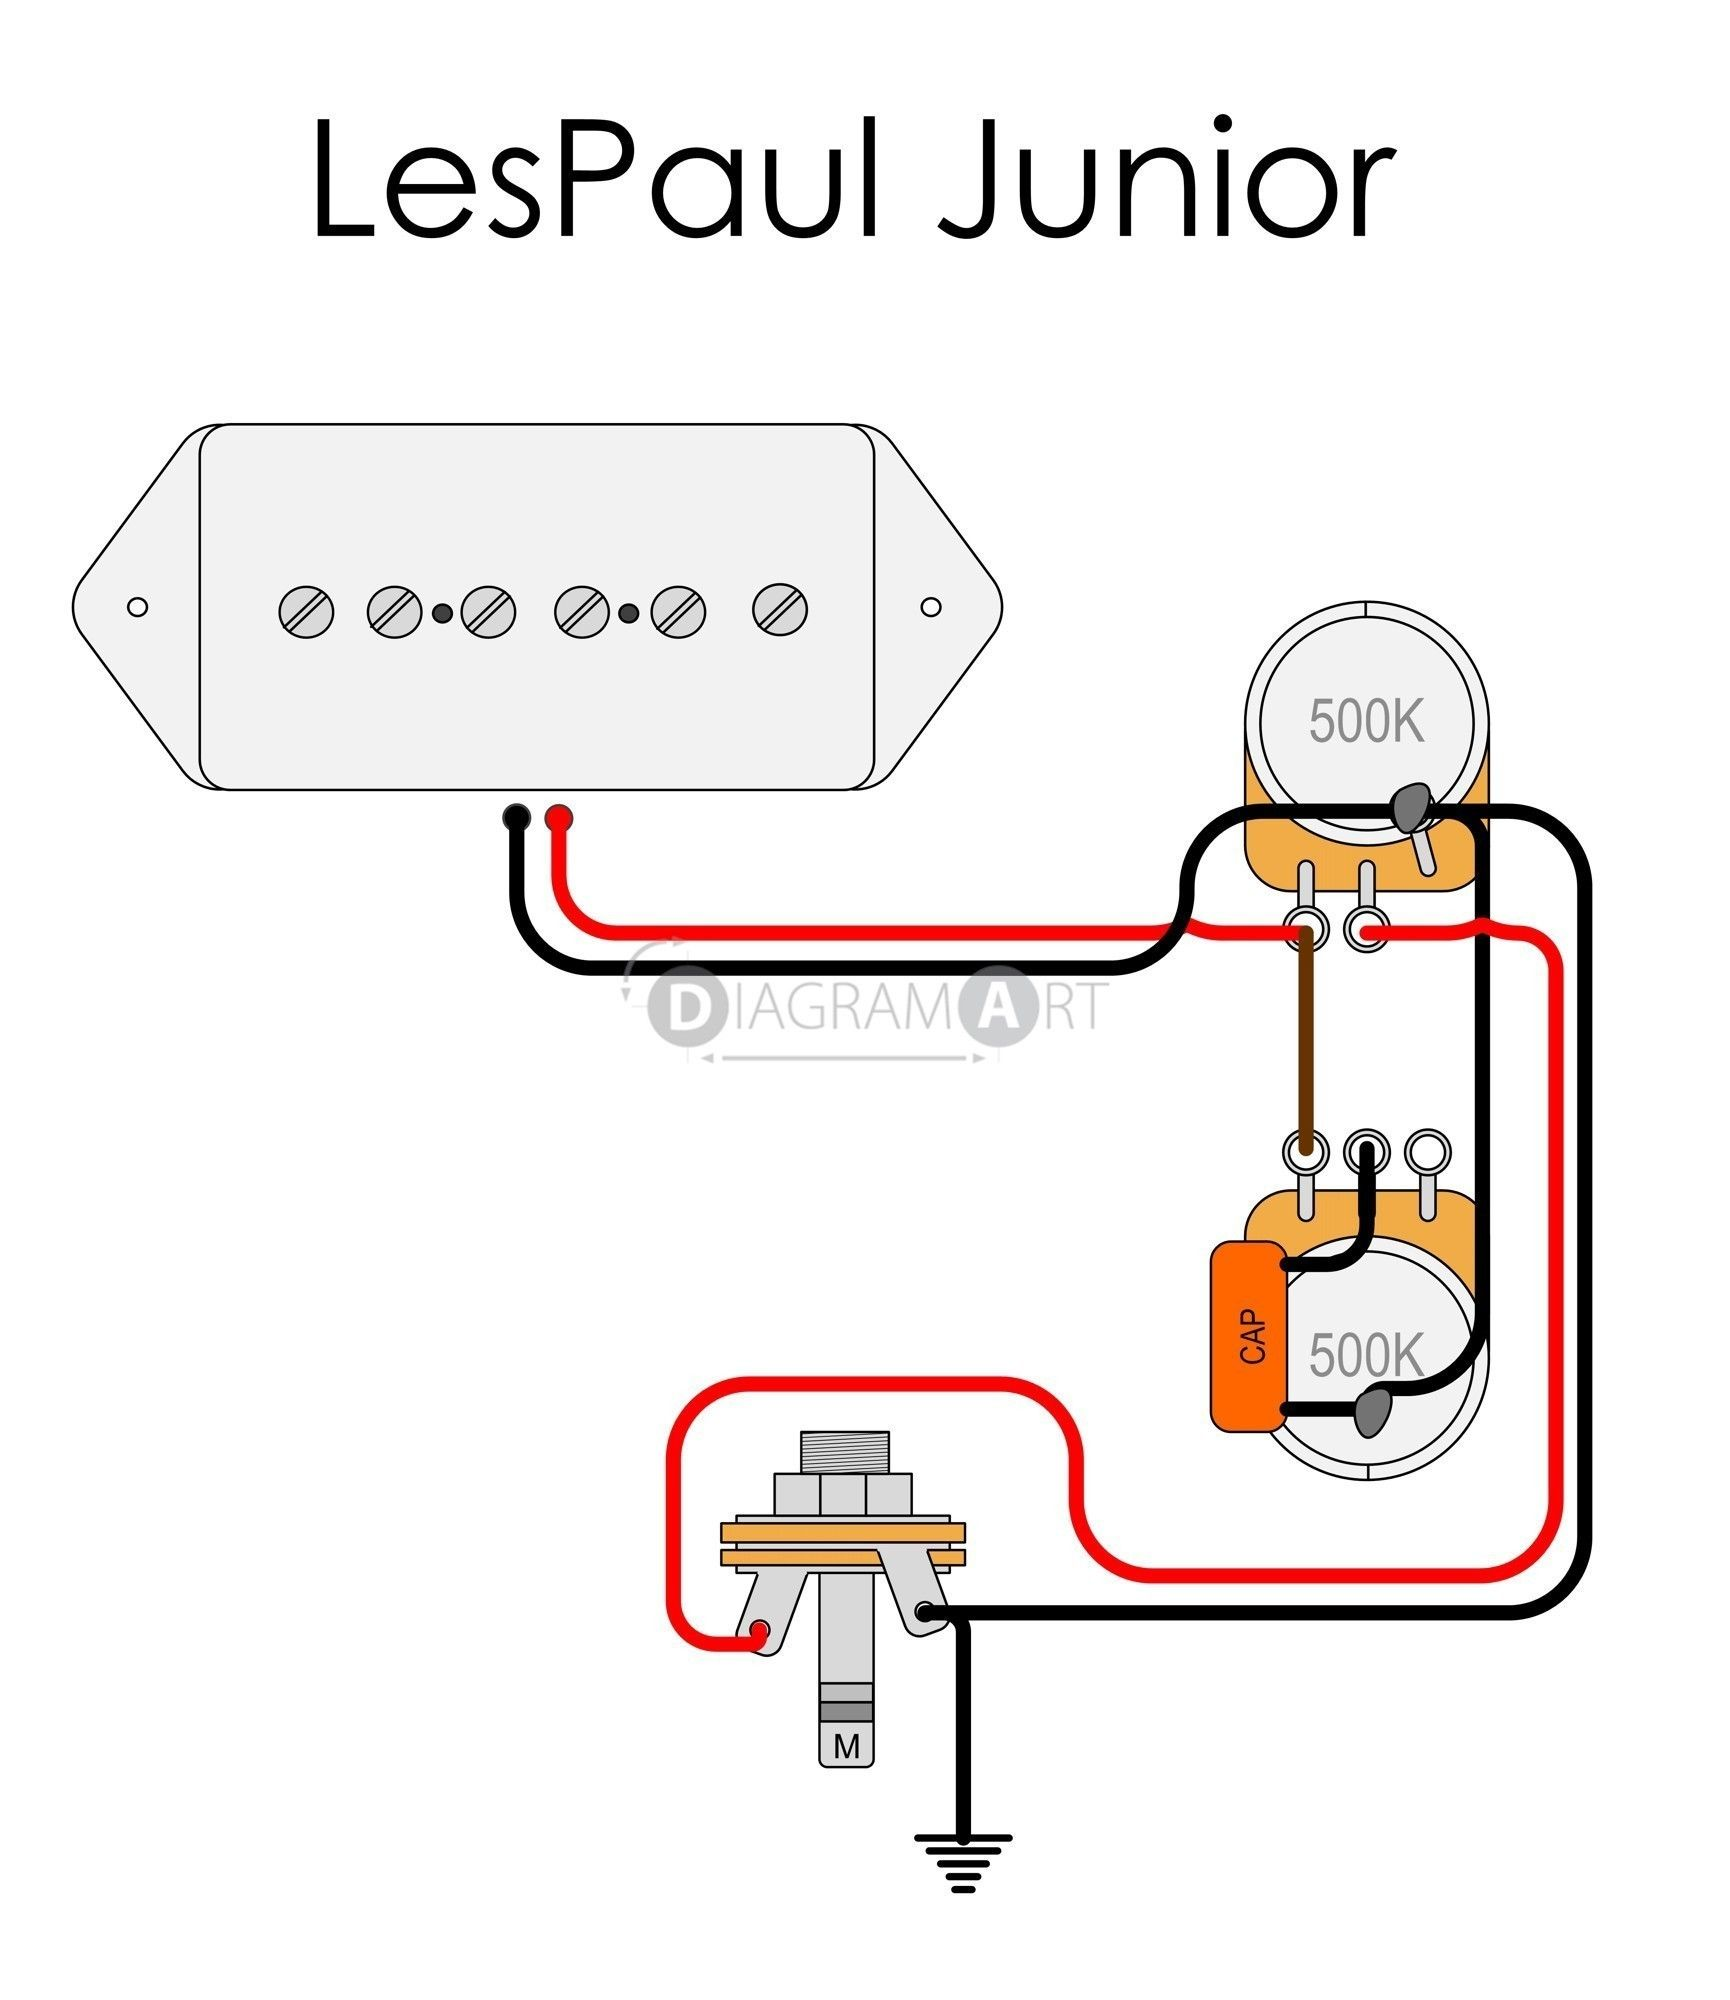 New Gibson Les Paul Modern Wiring Diagram In 2020 Epiphone Les Paul